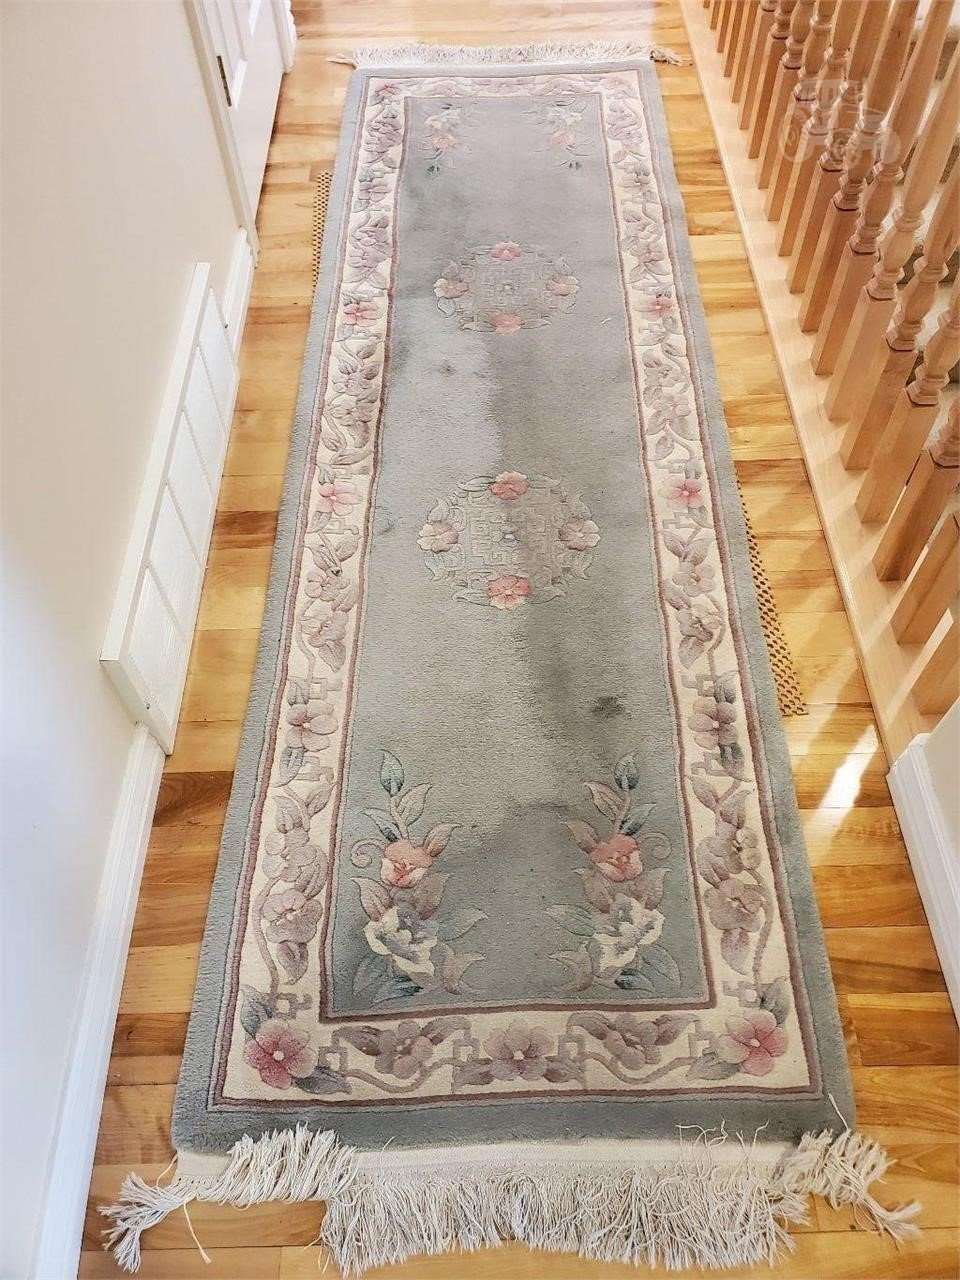 Carpet Runner Other Items For Sale 1 Listings Tractorhouse Com Page 1 Of 1